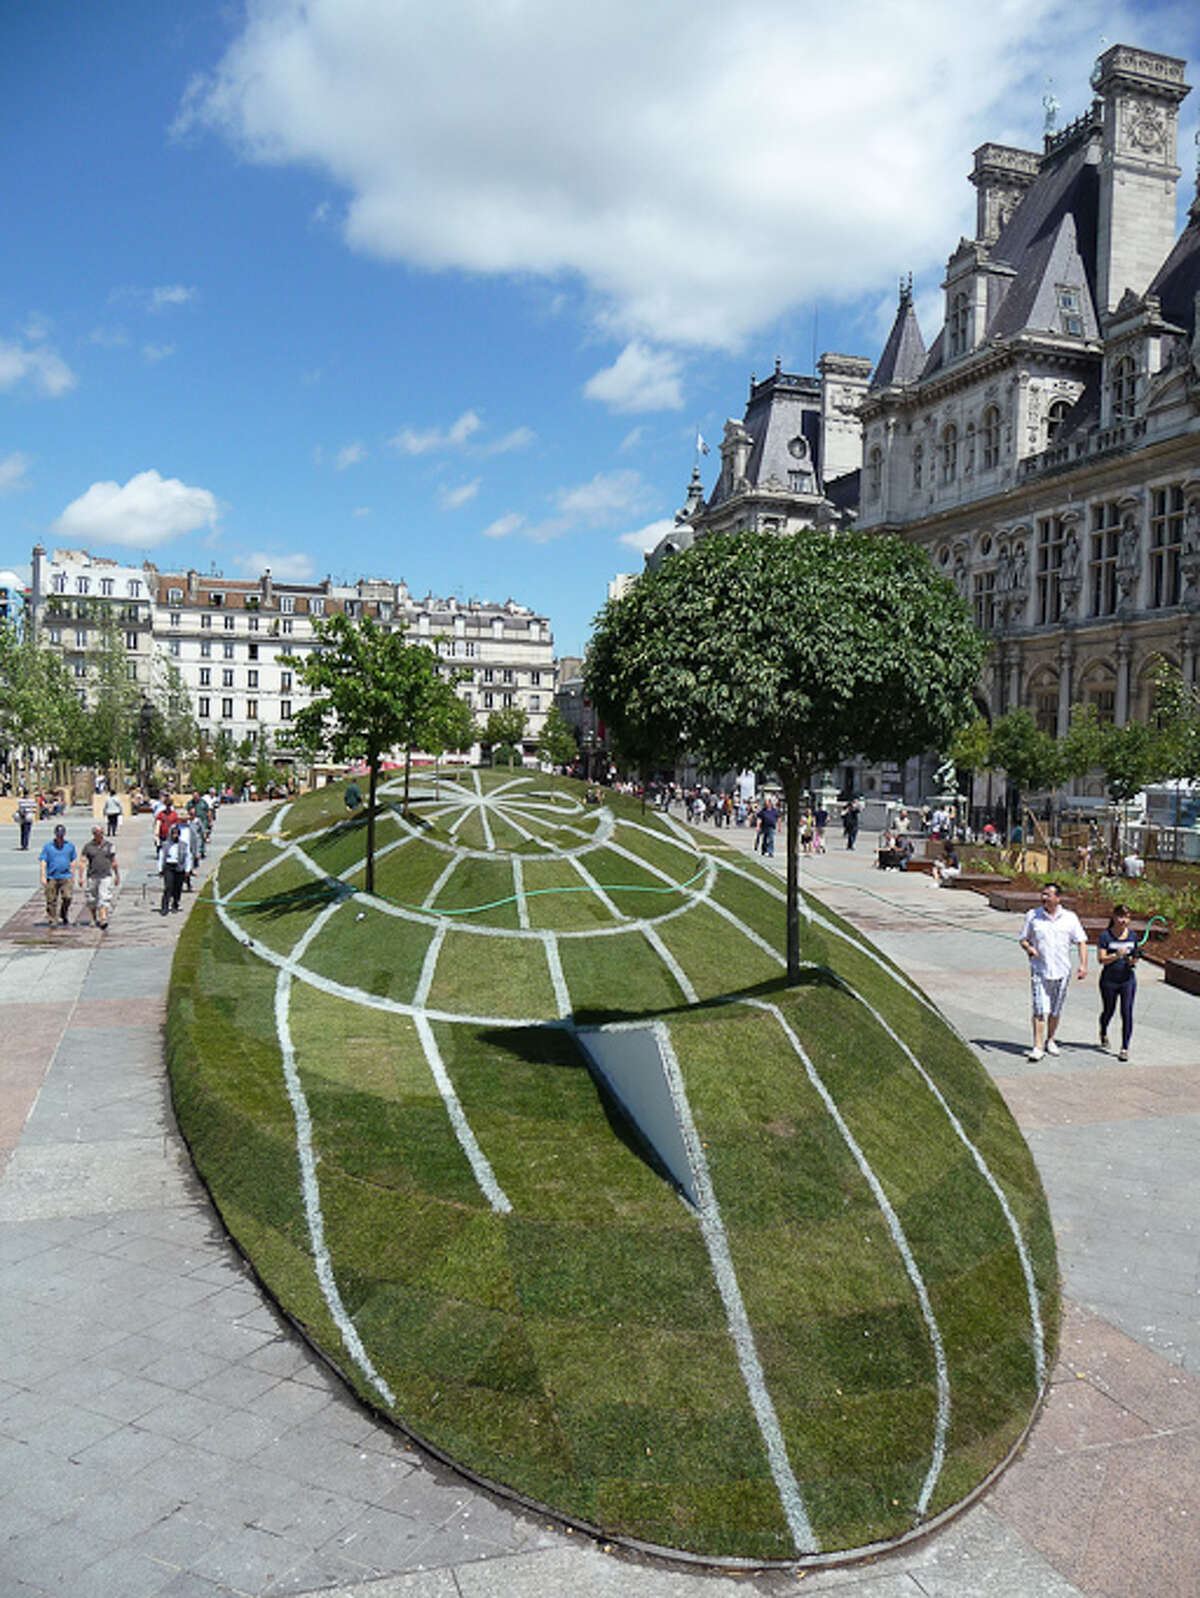 Though the lawn looks like a 3D sphere from a certain angle, it actually encompasses 1200 square meters of grass and measures 100 meters long. (Photo: Paris côté Jardin)